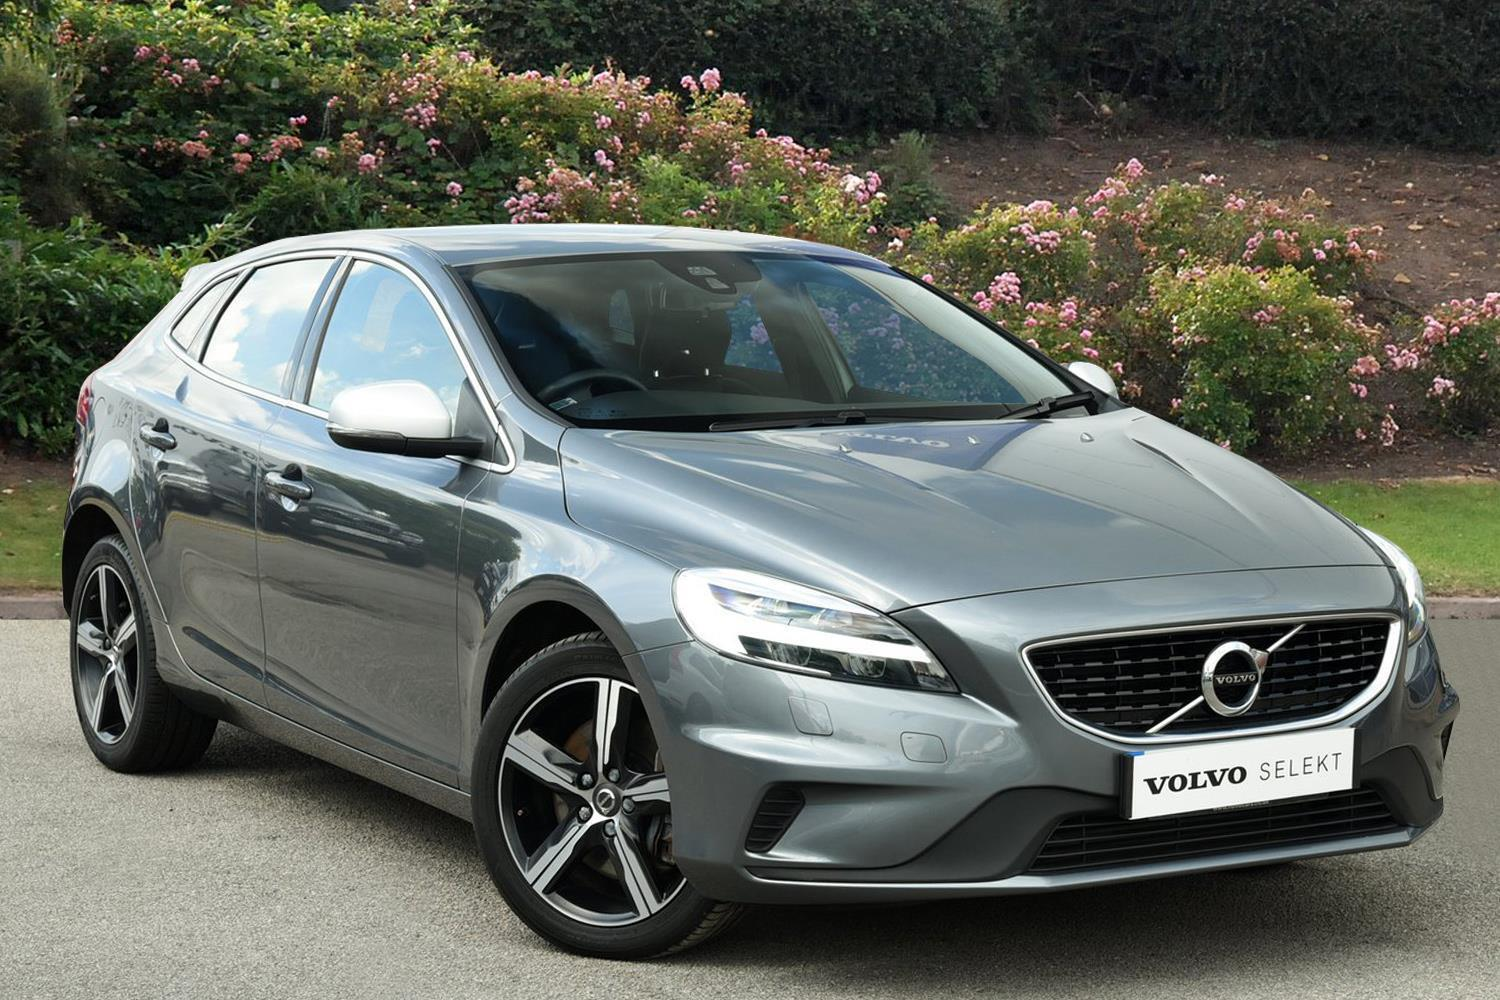 used volvo v40 d3 4 cyl 150 r design nav plus 5dr diesel hatchback for sale bristol street. Black Bedroom Furniture Sets. Home Design Ideas